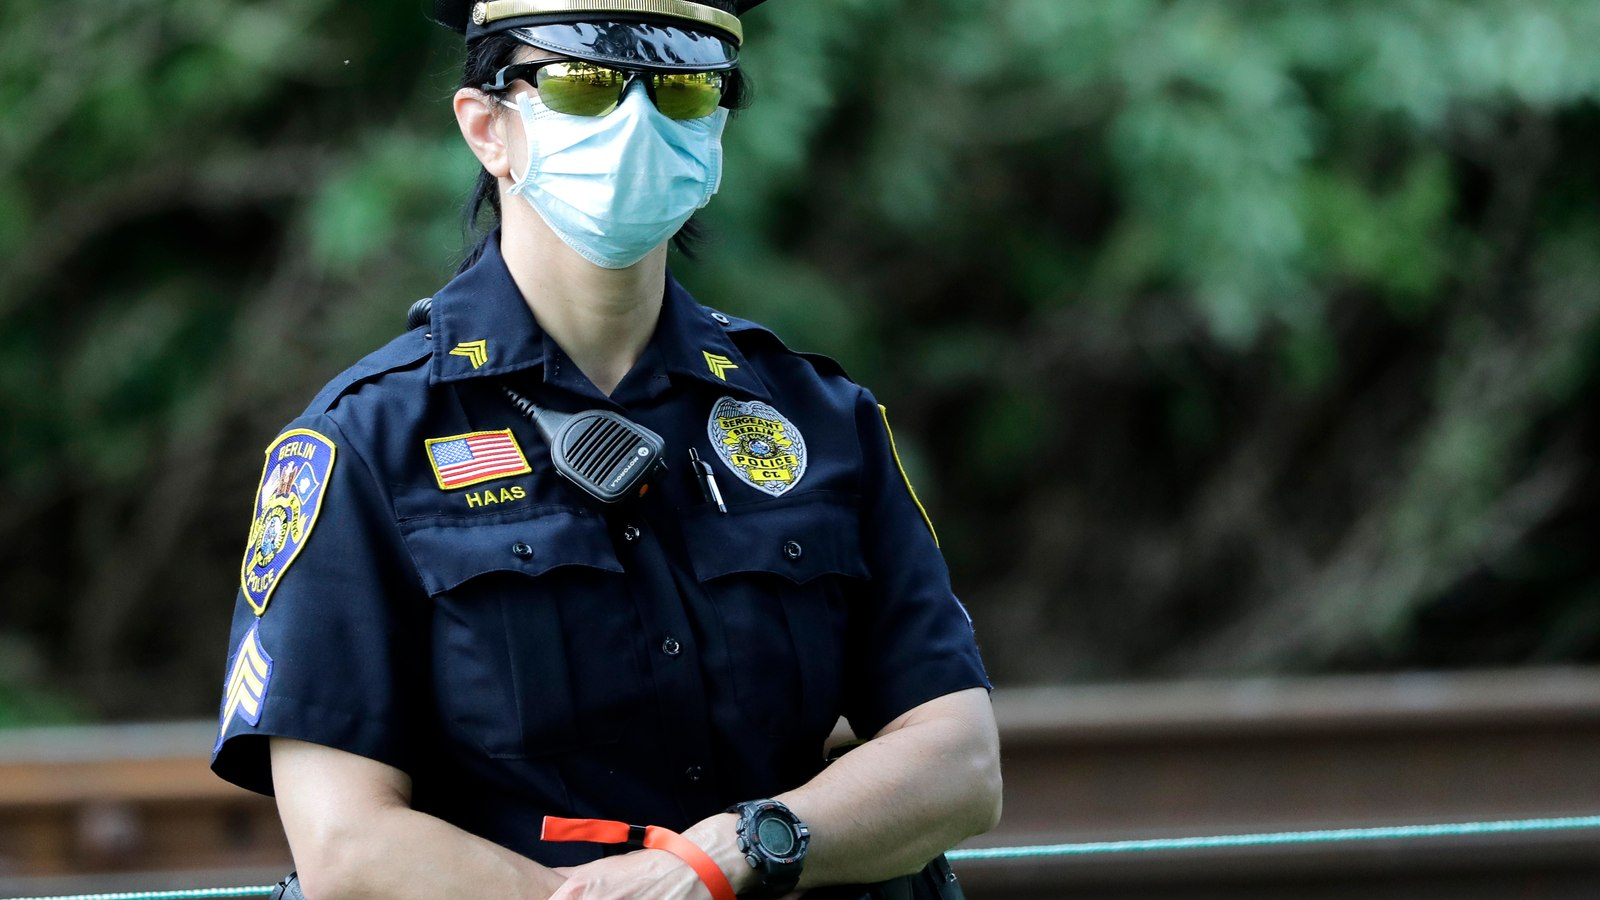 Perceptions of Police Using PPE During the Pandemic